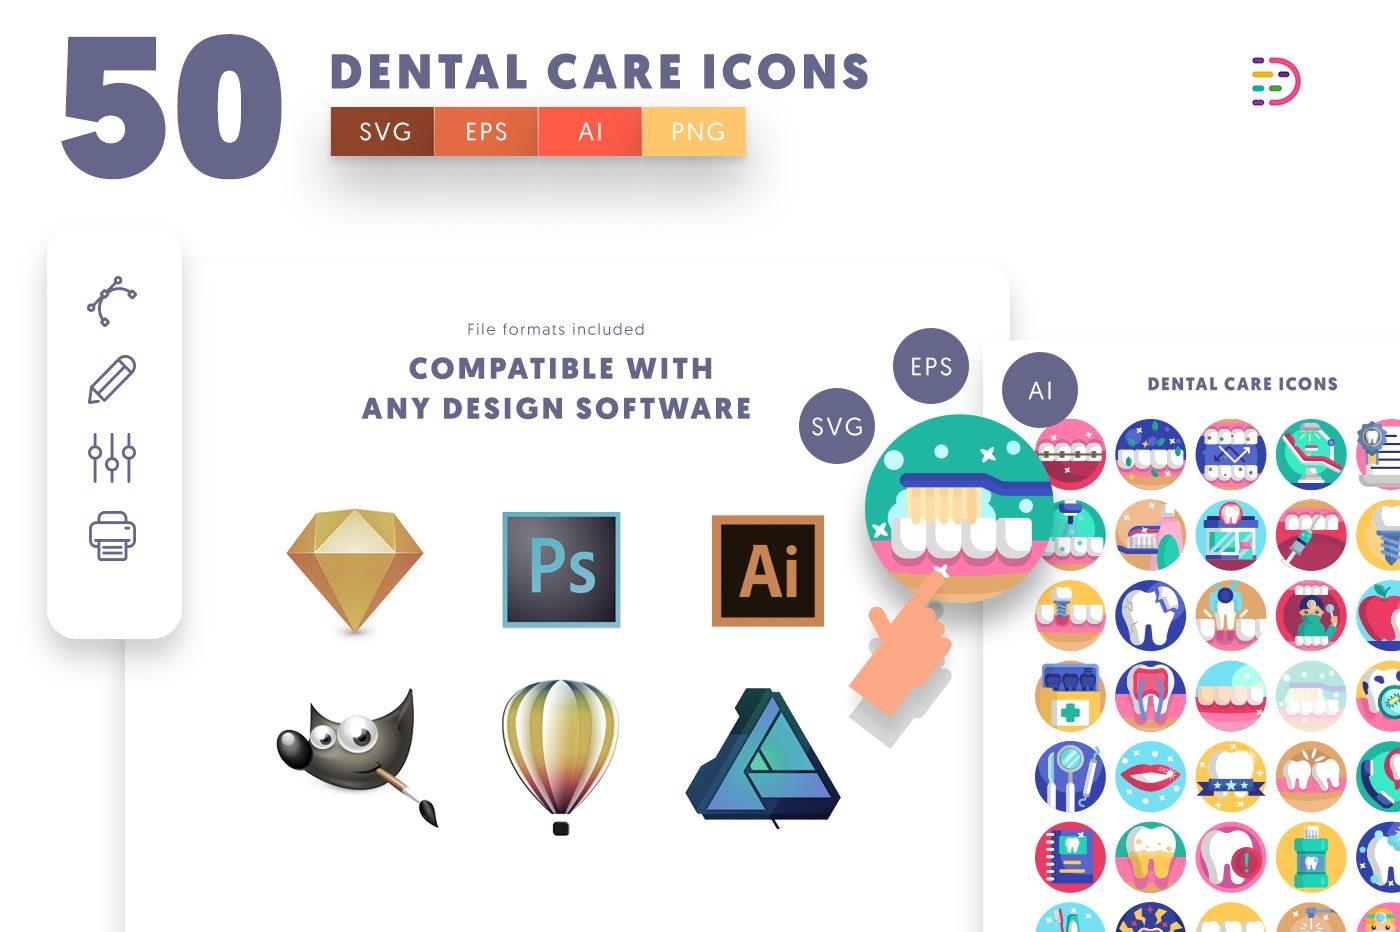 full vector 50 Dental Care Icons EPS, SVG, PNG